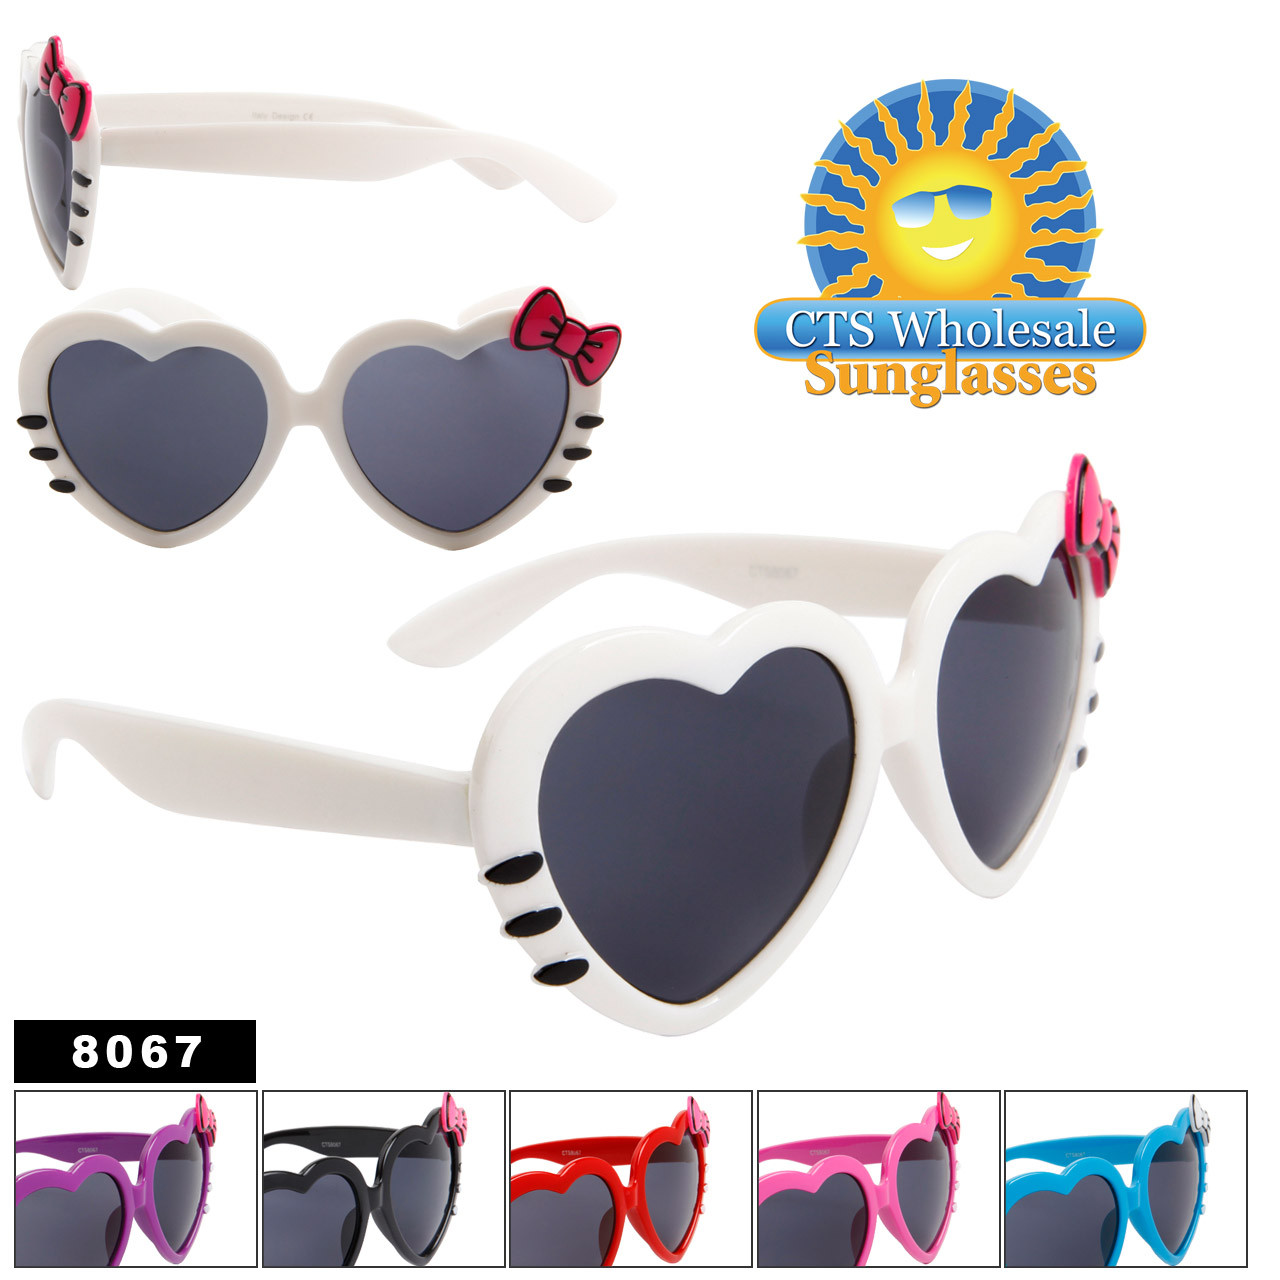 7bbbca237e369 Wholesale Heart Sunglasses with Bow   Whiskers - Sunglasses by the Dozen